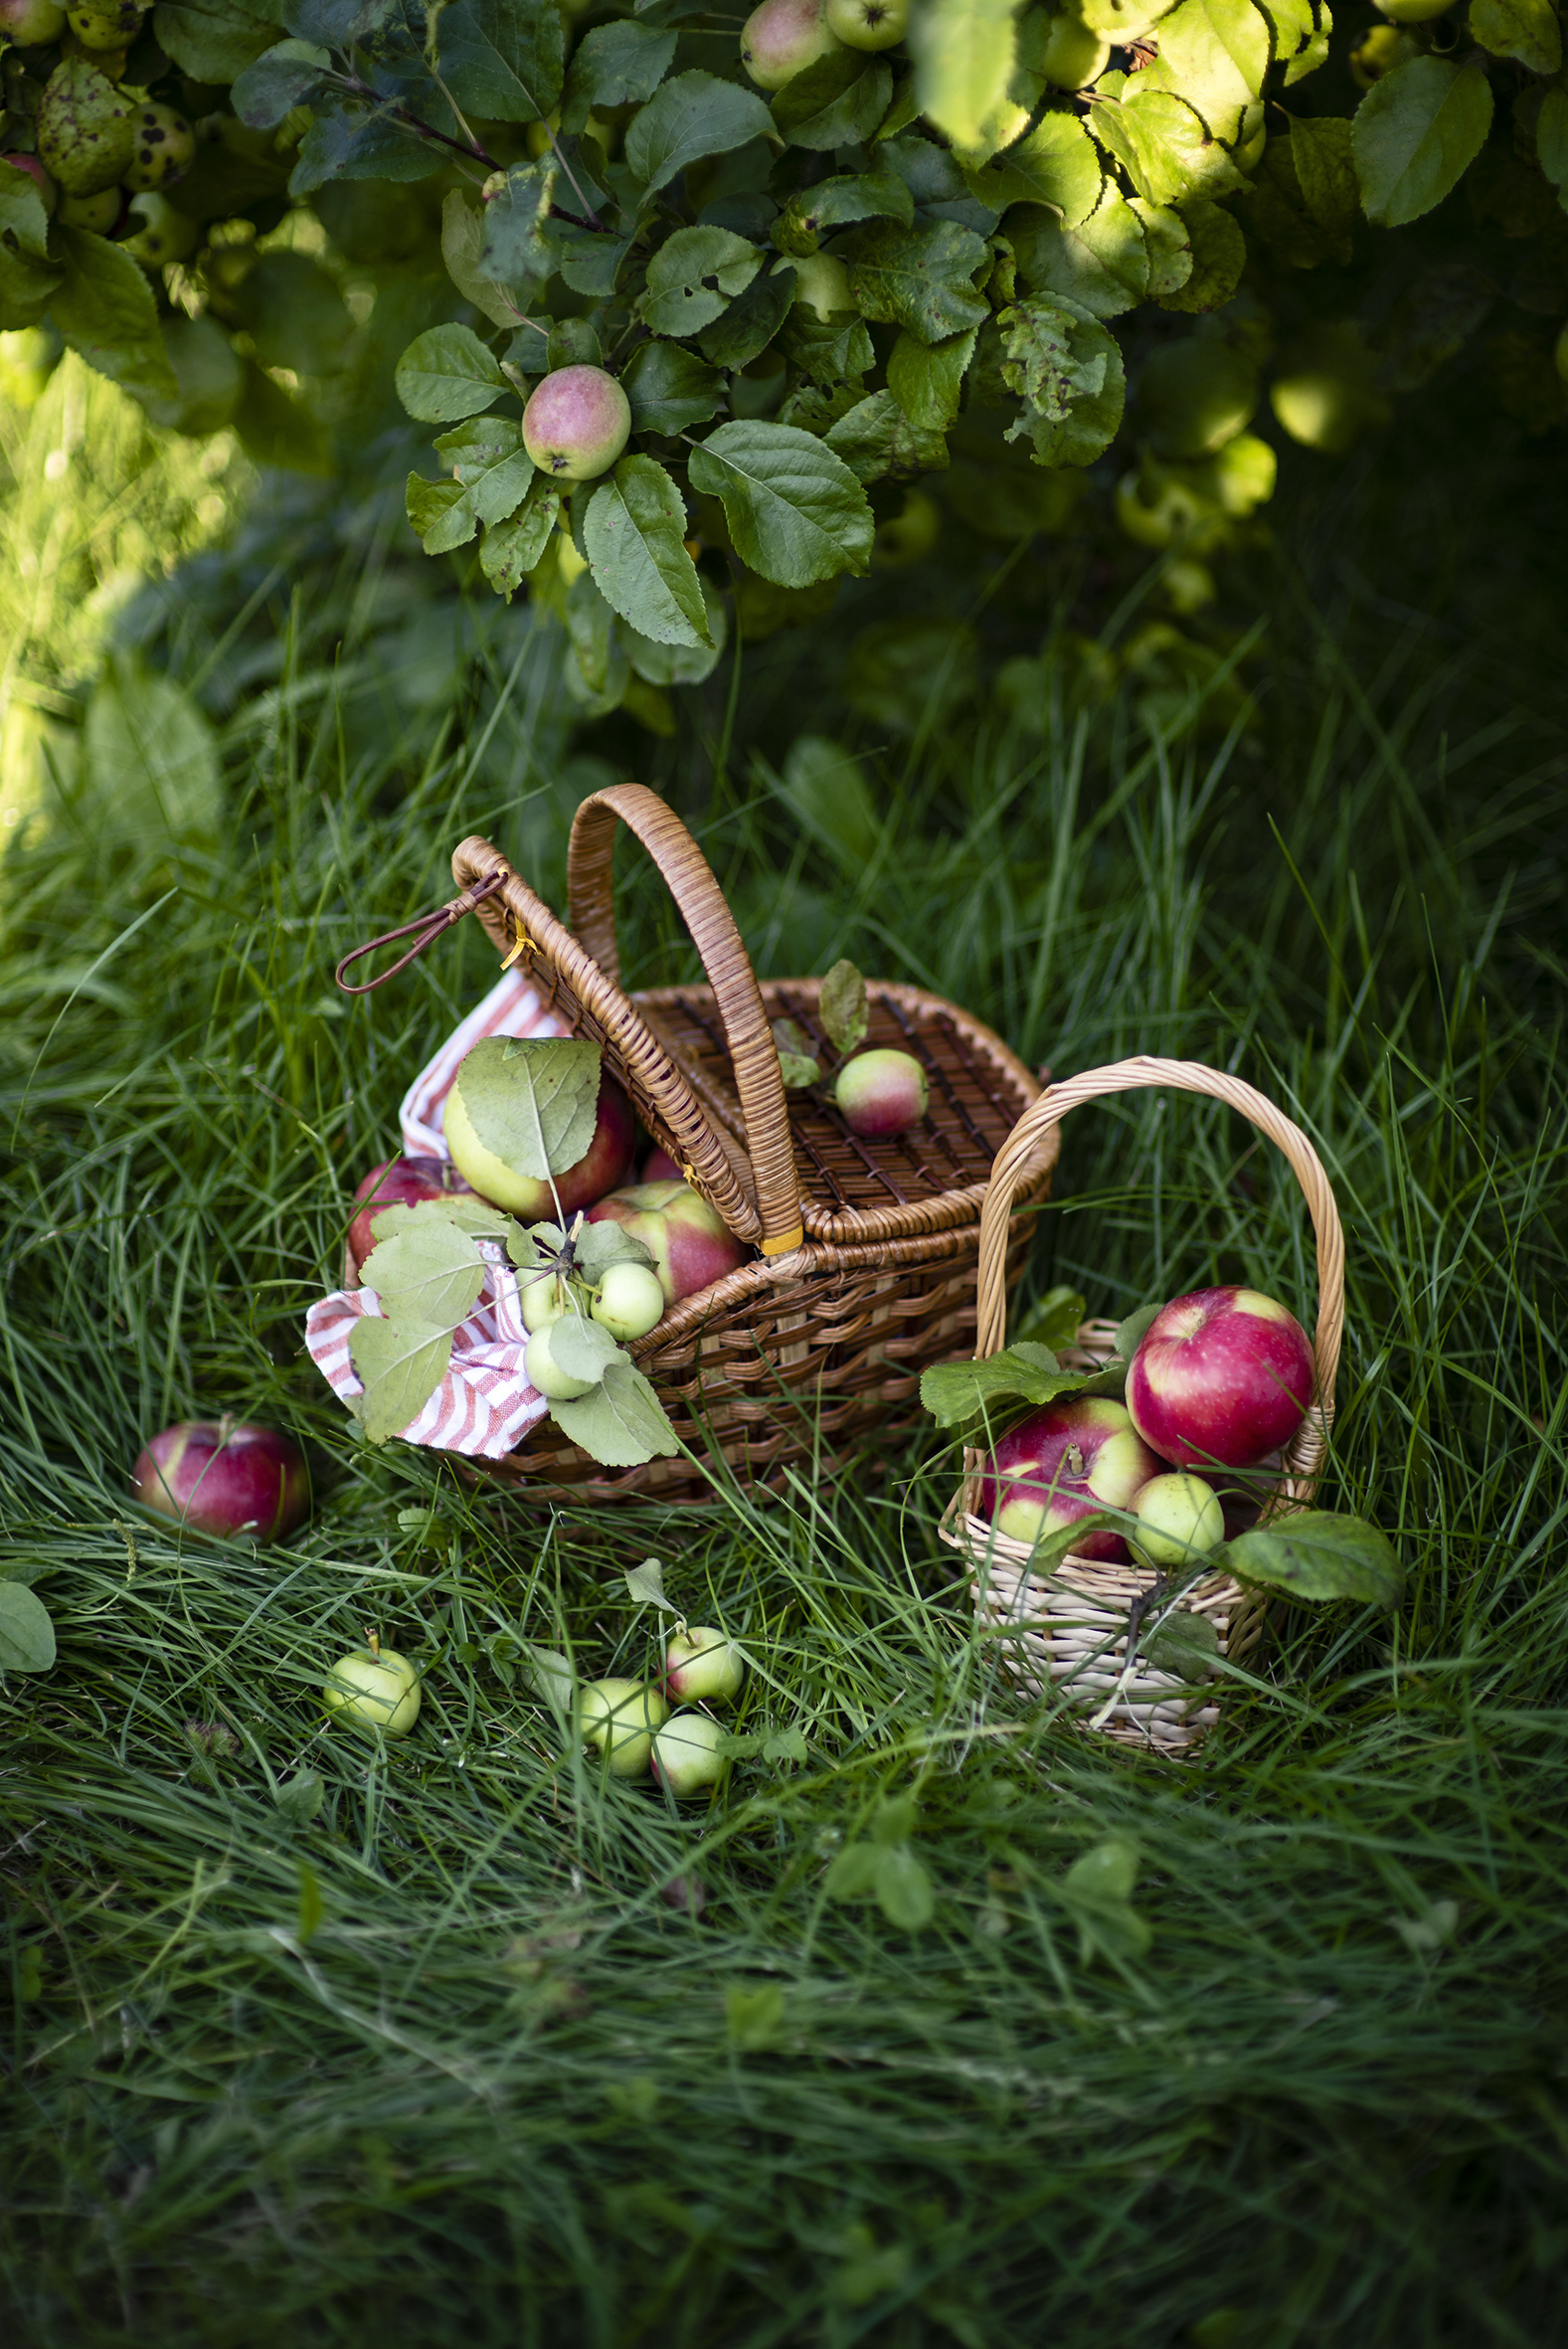 Wallpaper Apples Wicker basket Food Grass  for Mobile phone